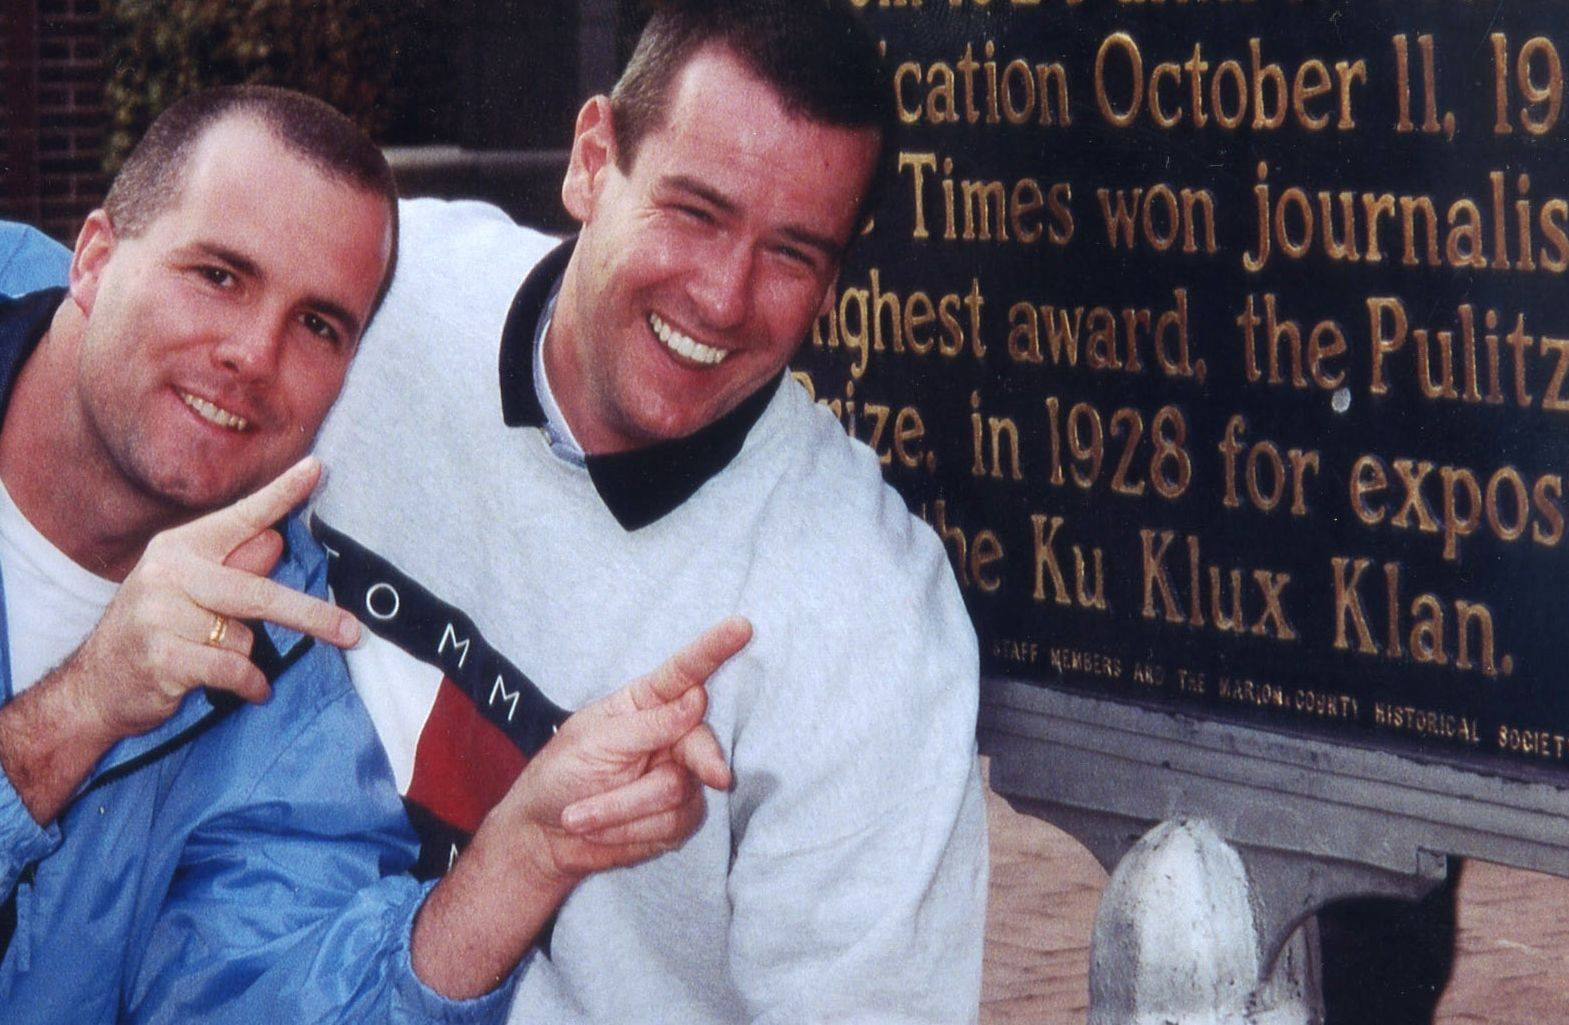 Elgin police Lt. Sean Rafferty, left, and officer Tom Wolek pose near a sign in Indianapolis that refers to the Pulitzer Prize won by the Indianapolis Times in 1928 for its work exposing the Ku Klux Klan. The photo was taken during an off-duty, social trip in the late 1990s.